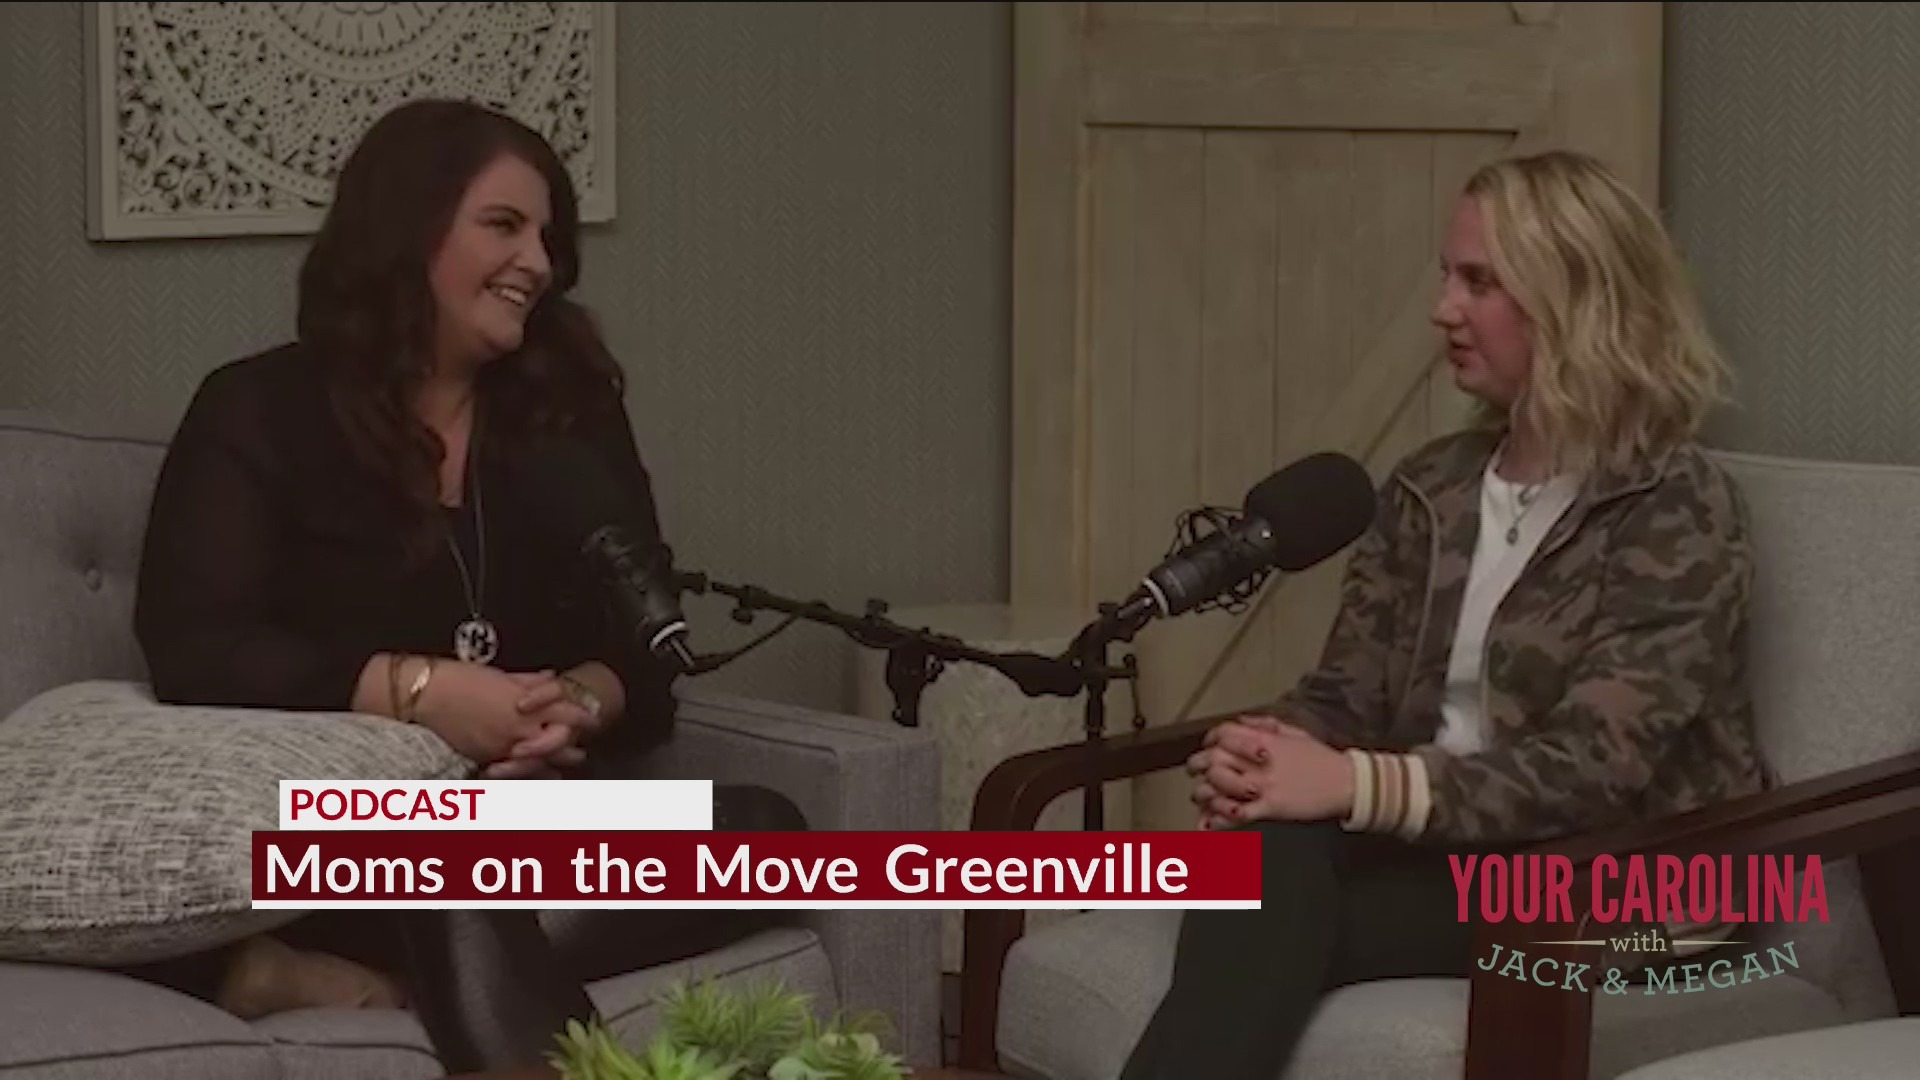 Moms on the Move Greenville Podcast